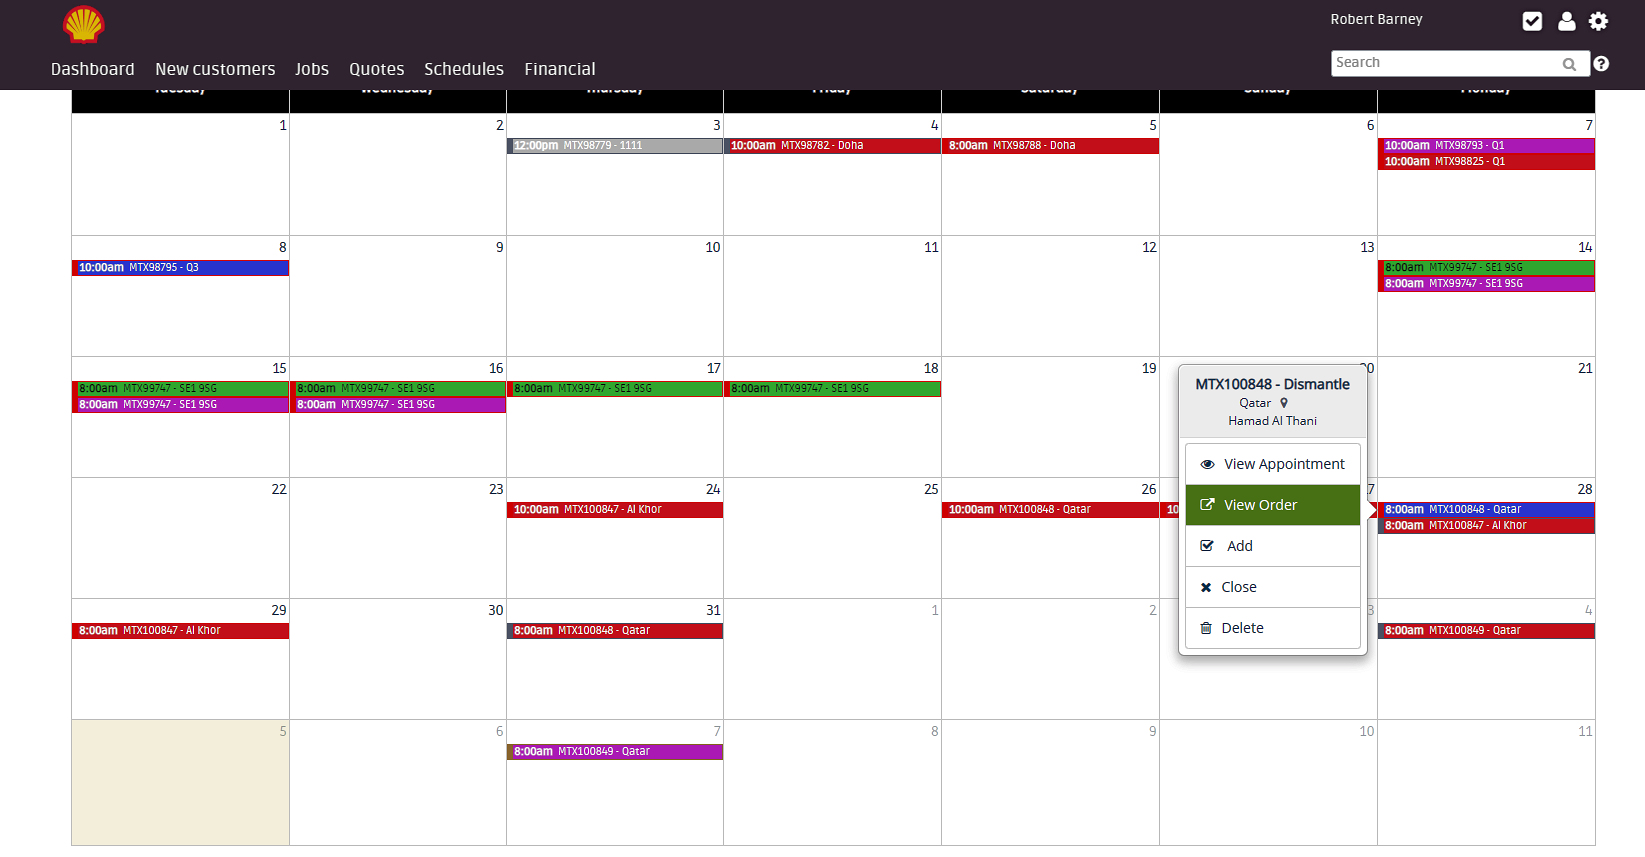 One month schedule on Flobot